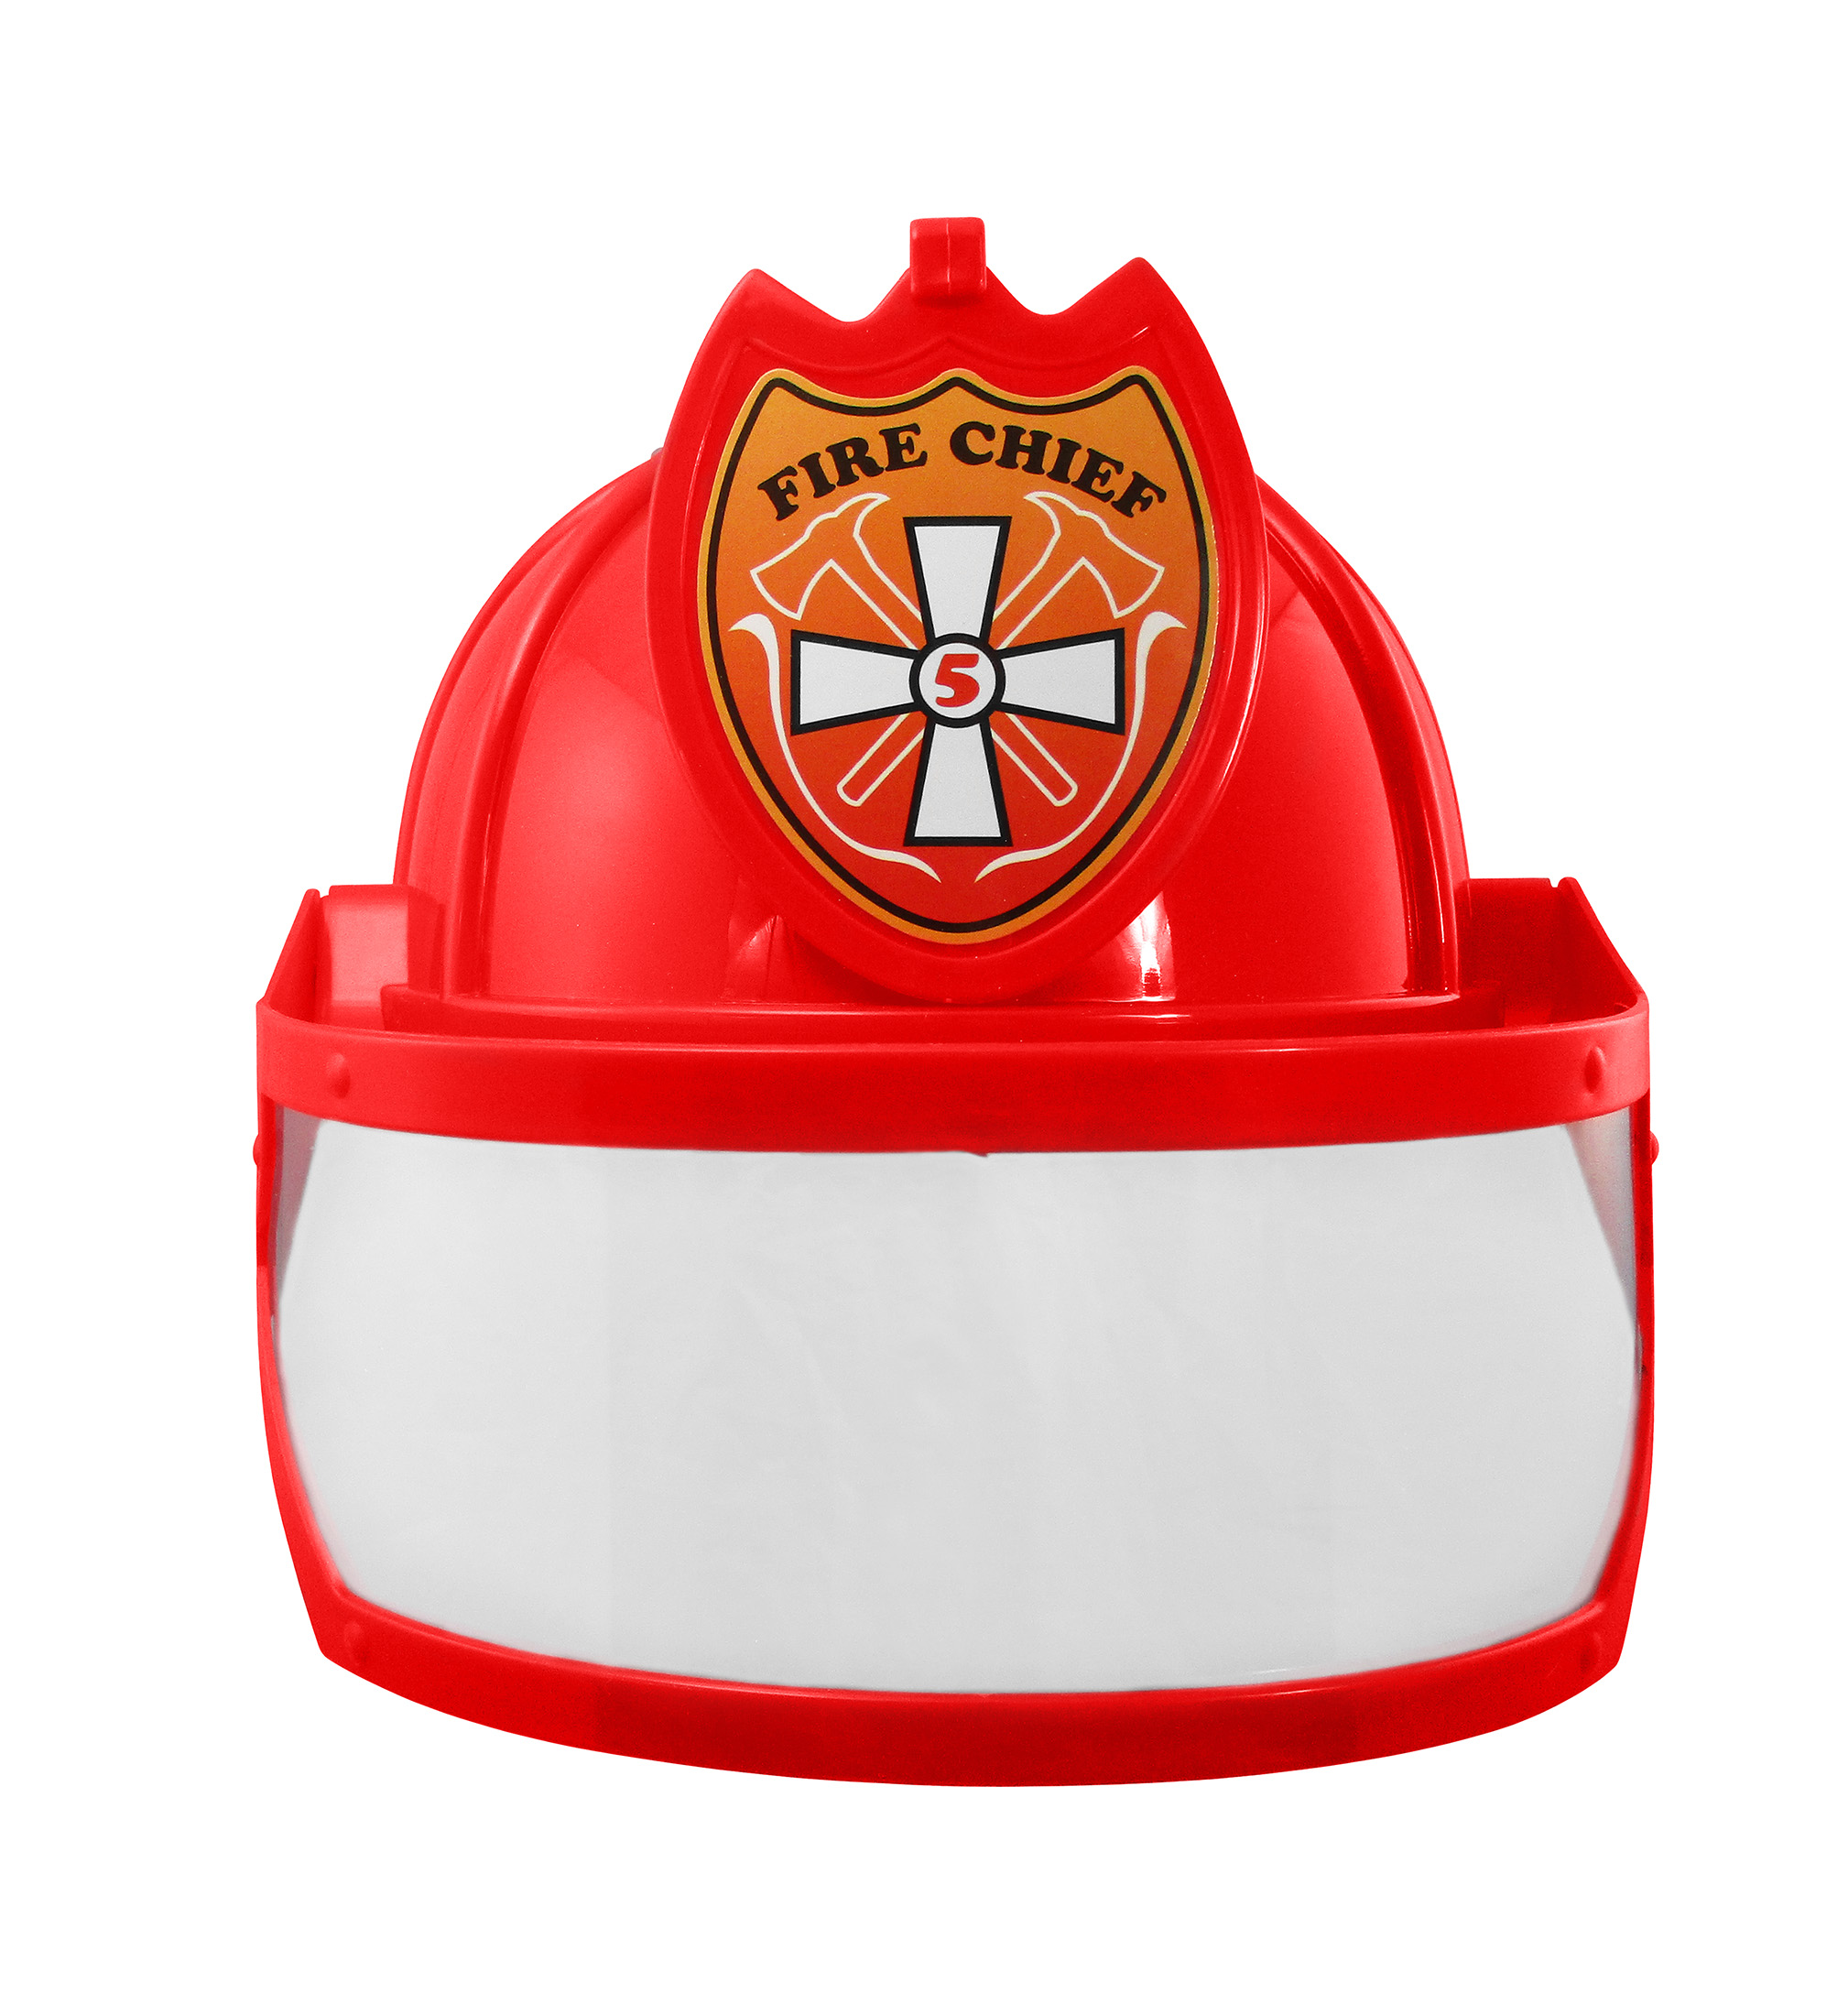 thumbnail 12 - Adult Child Fire Chief Firefighter Fireman Helmet with Visor Costume